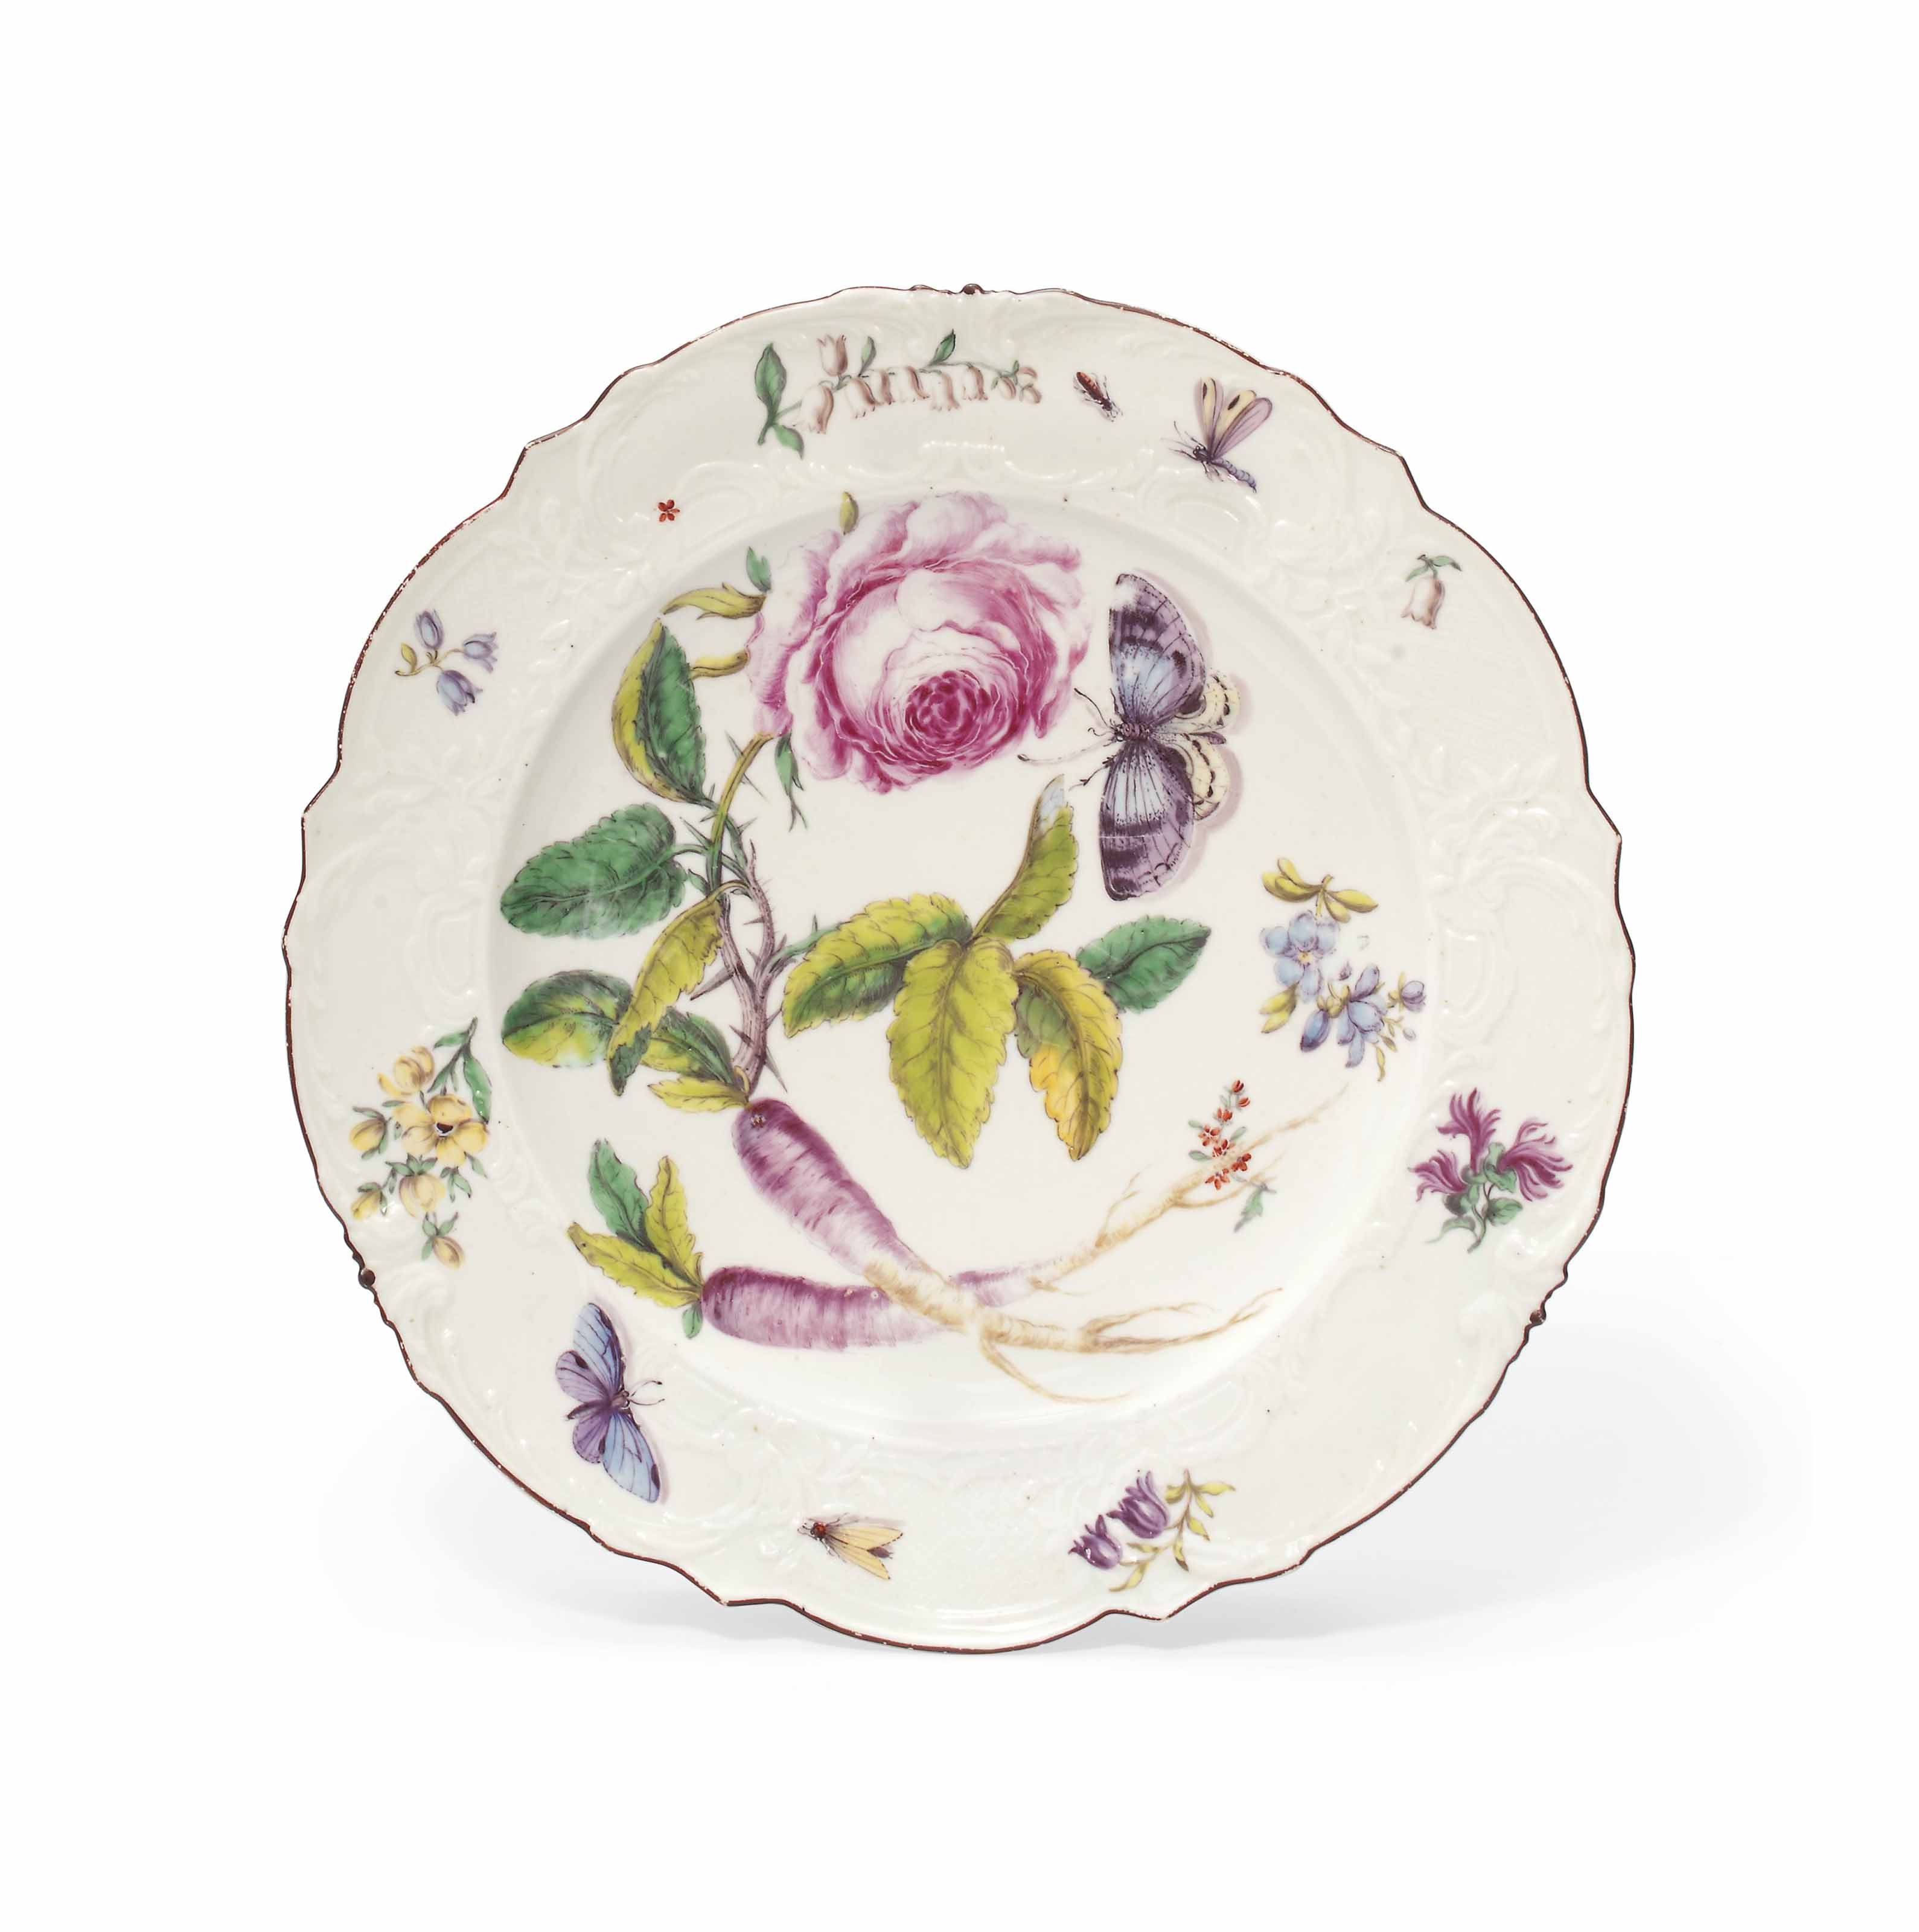 A Chelsea botanical moulded plate, circa 1755. 9½  in (24  cm) wide. Sold for £15,000 on 31 May 2012 at Christie's in London